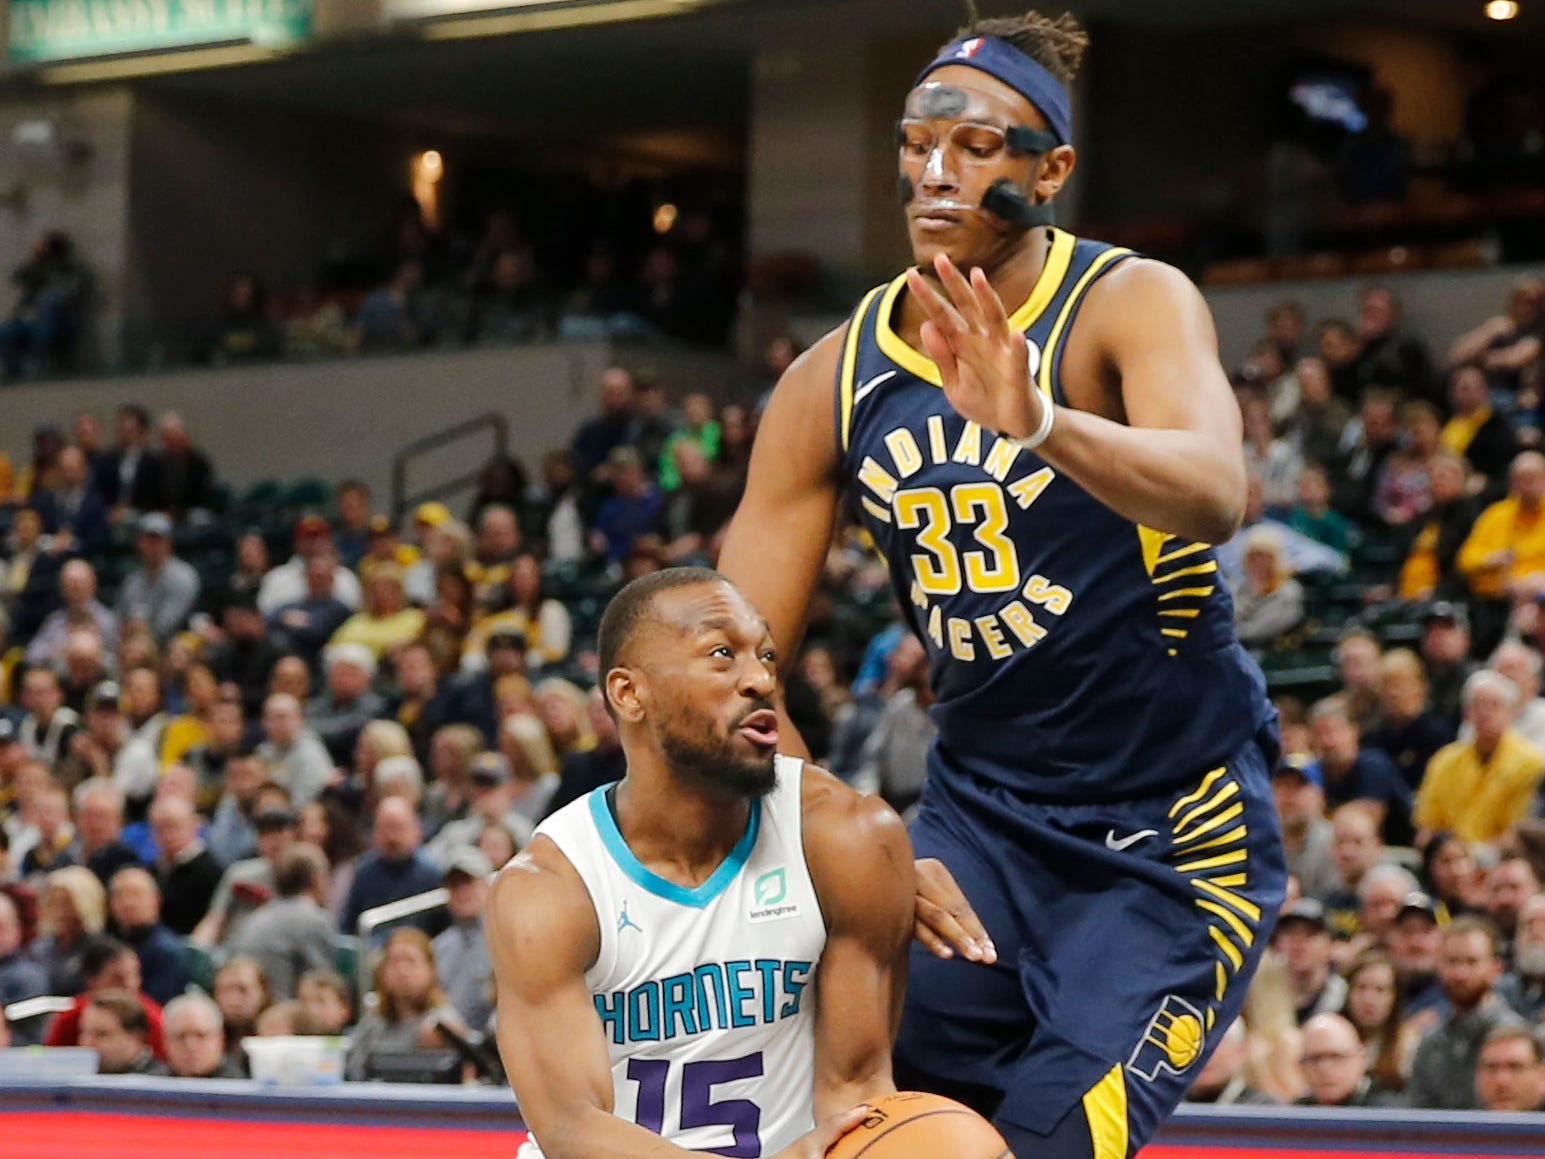 Feb 11, 2019; Indianapolis, IN, USA; Charlotte Hornets guard Kemba Walker (15) drives to the basket against Indiana Pacers center Myles Turner (33) during the first quarter at Bankers Life Fieldhouse.